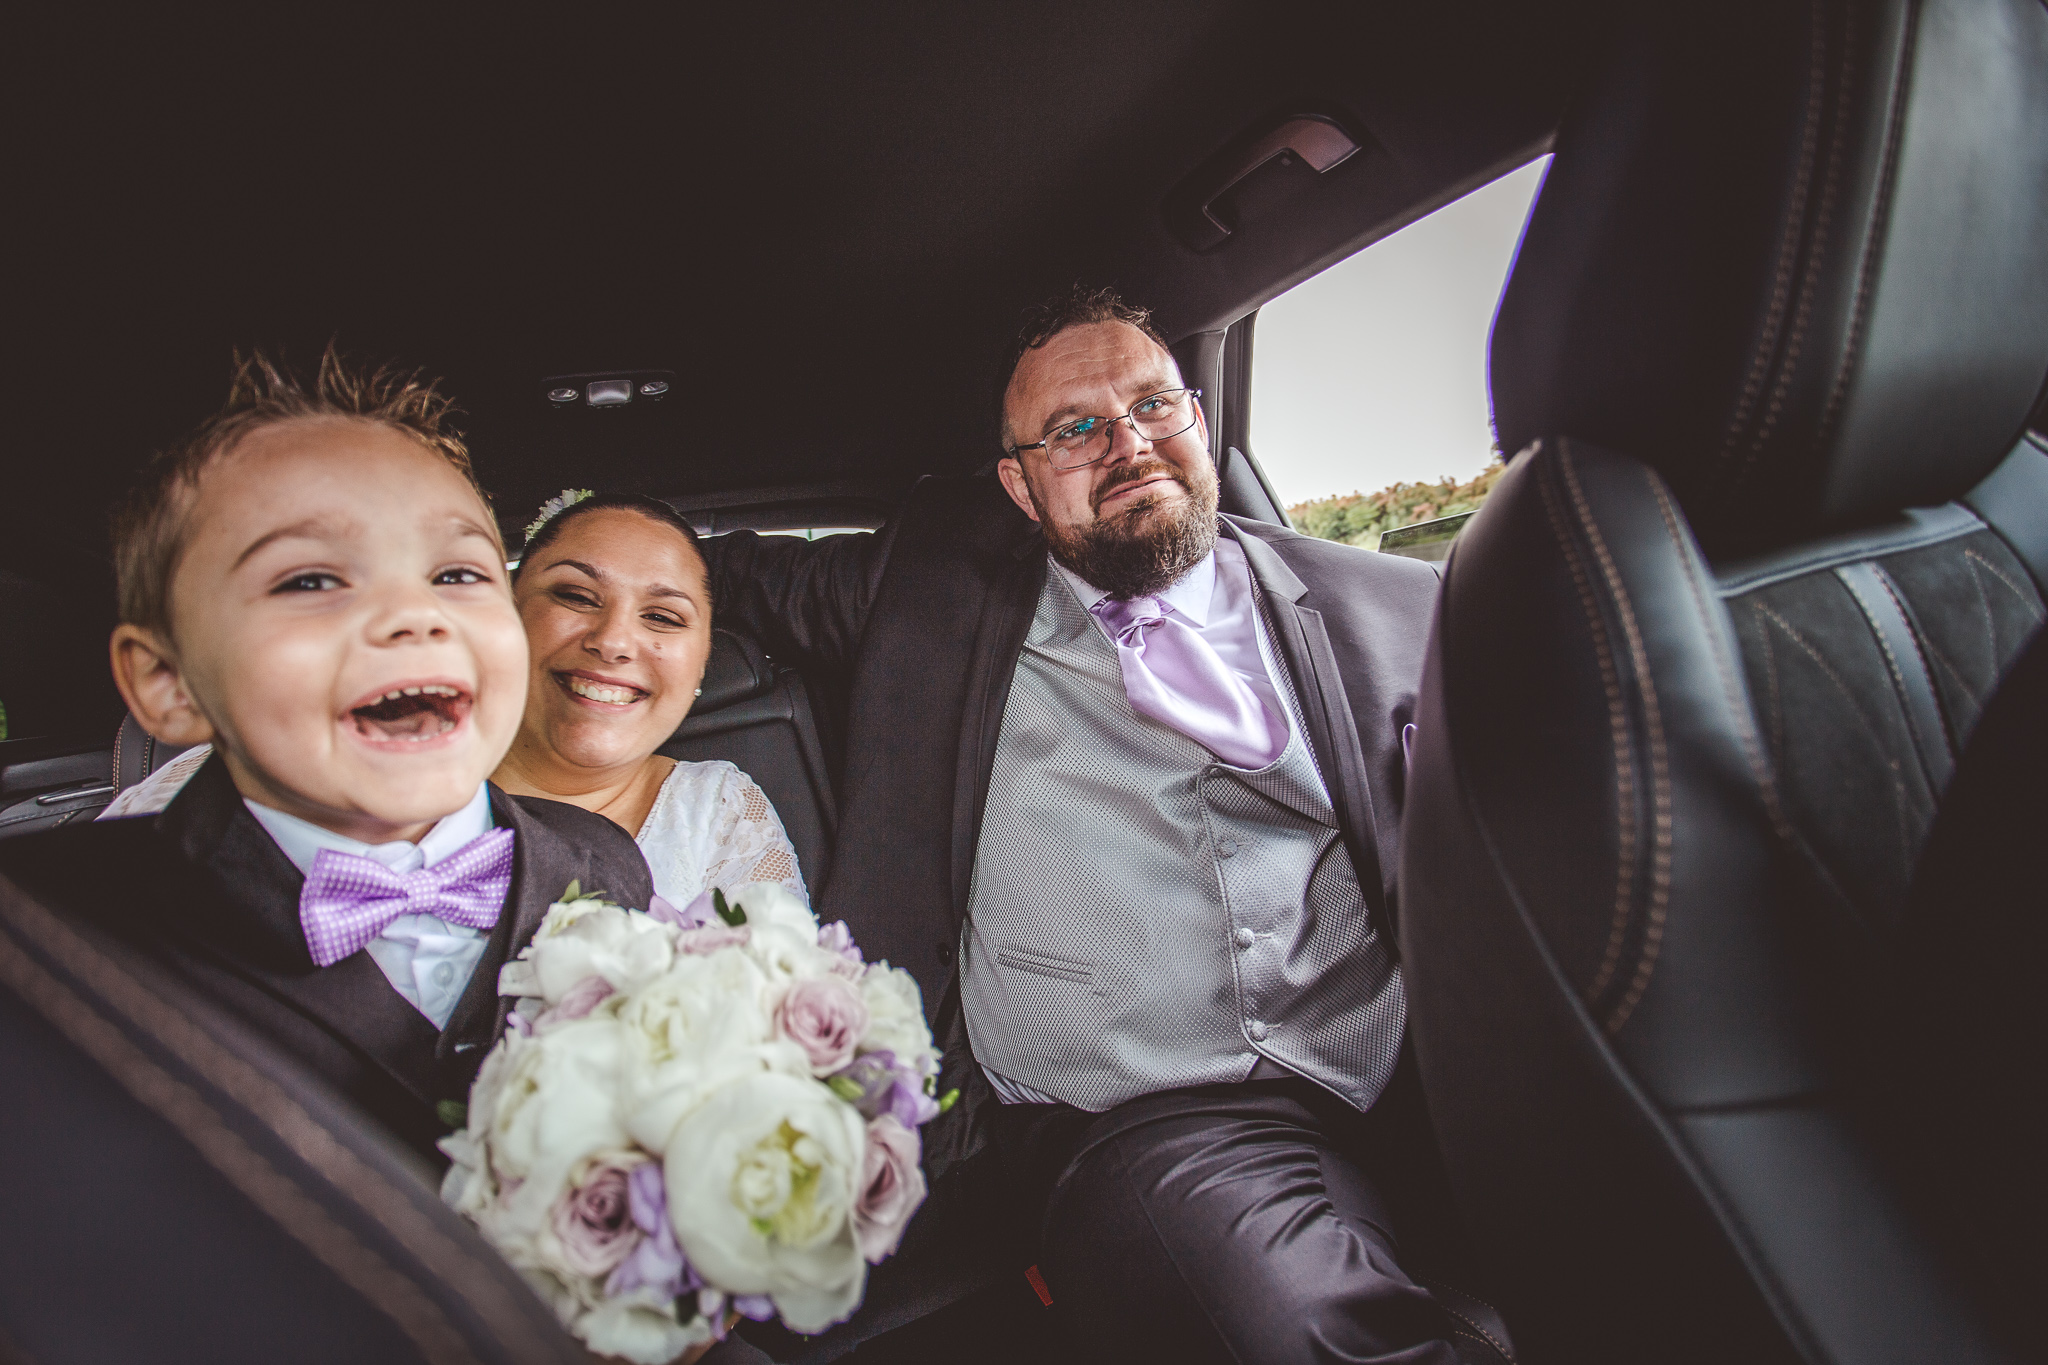 reportage mariage photo famille voiture maries enfant rire toulouse